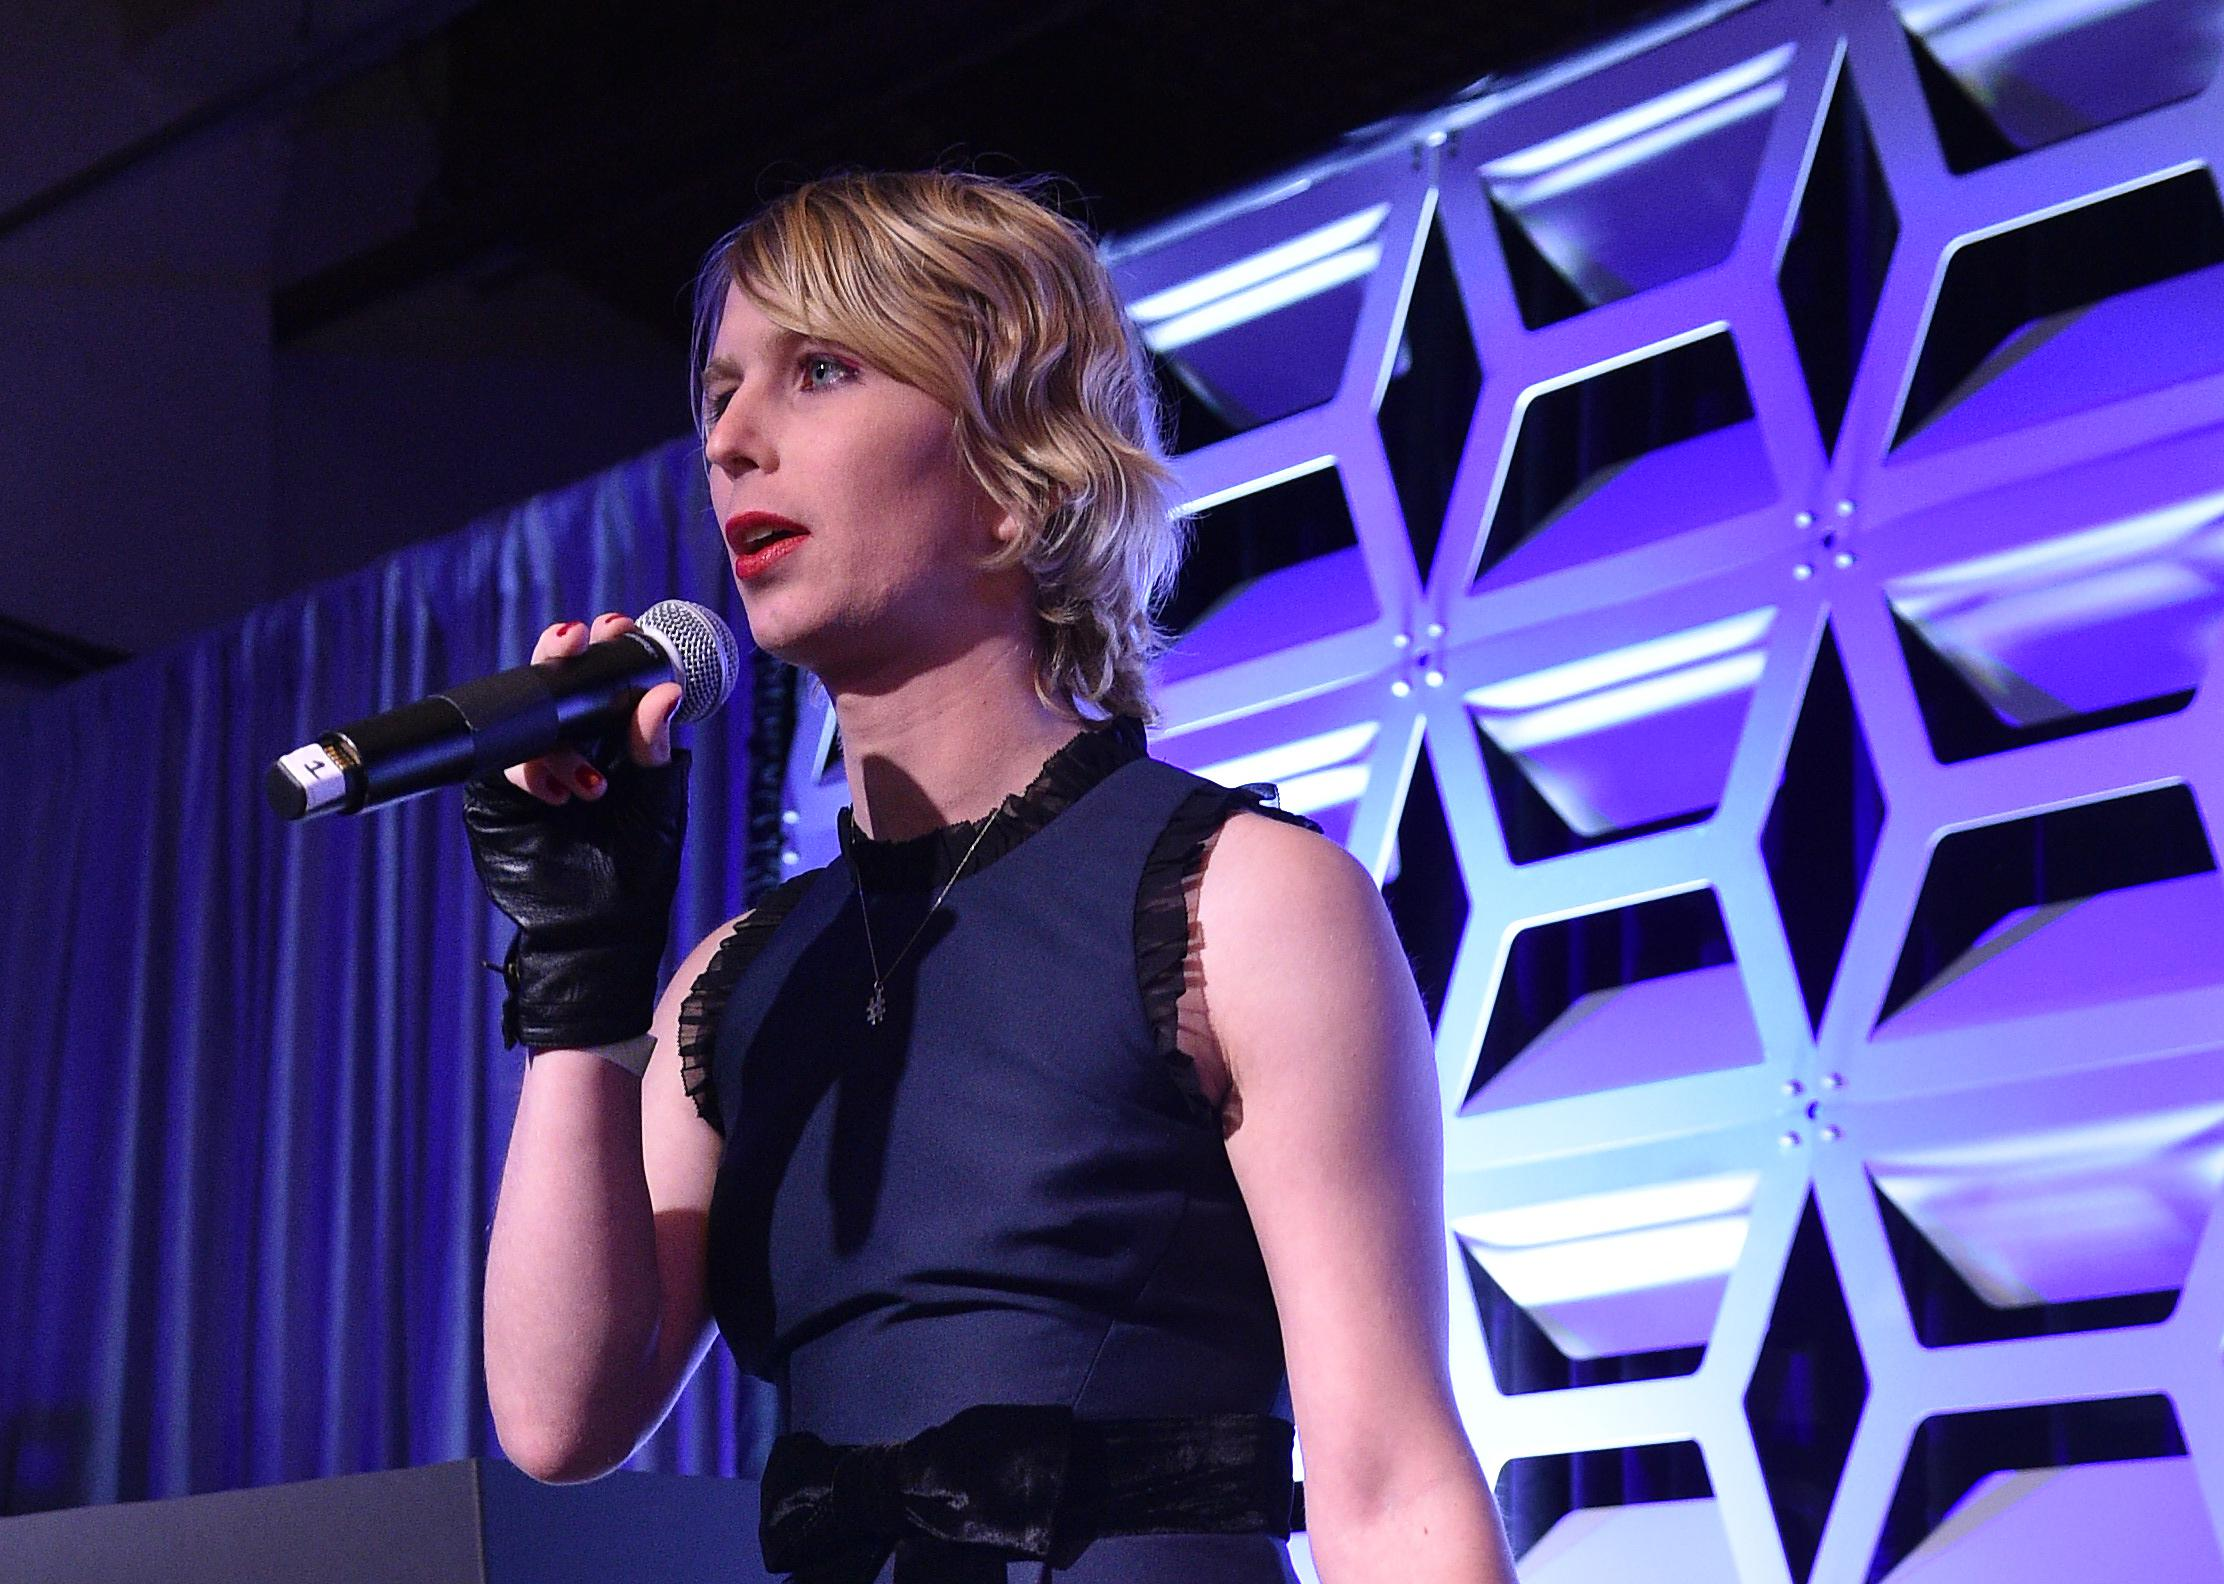 OUT100 Newsmaker of the Year Chelsea Manning speaks on stage during OUT Magazine #OUT100 Event presented by Lexus at the the Altman Building on November 9, 2017 in New York City.